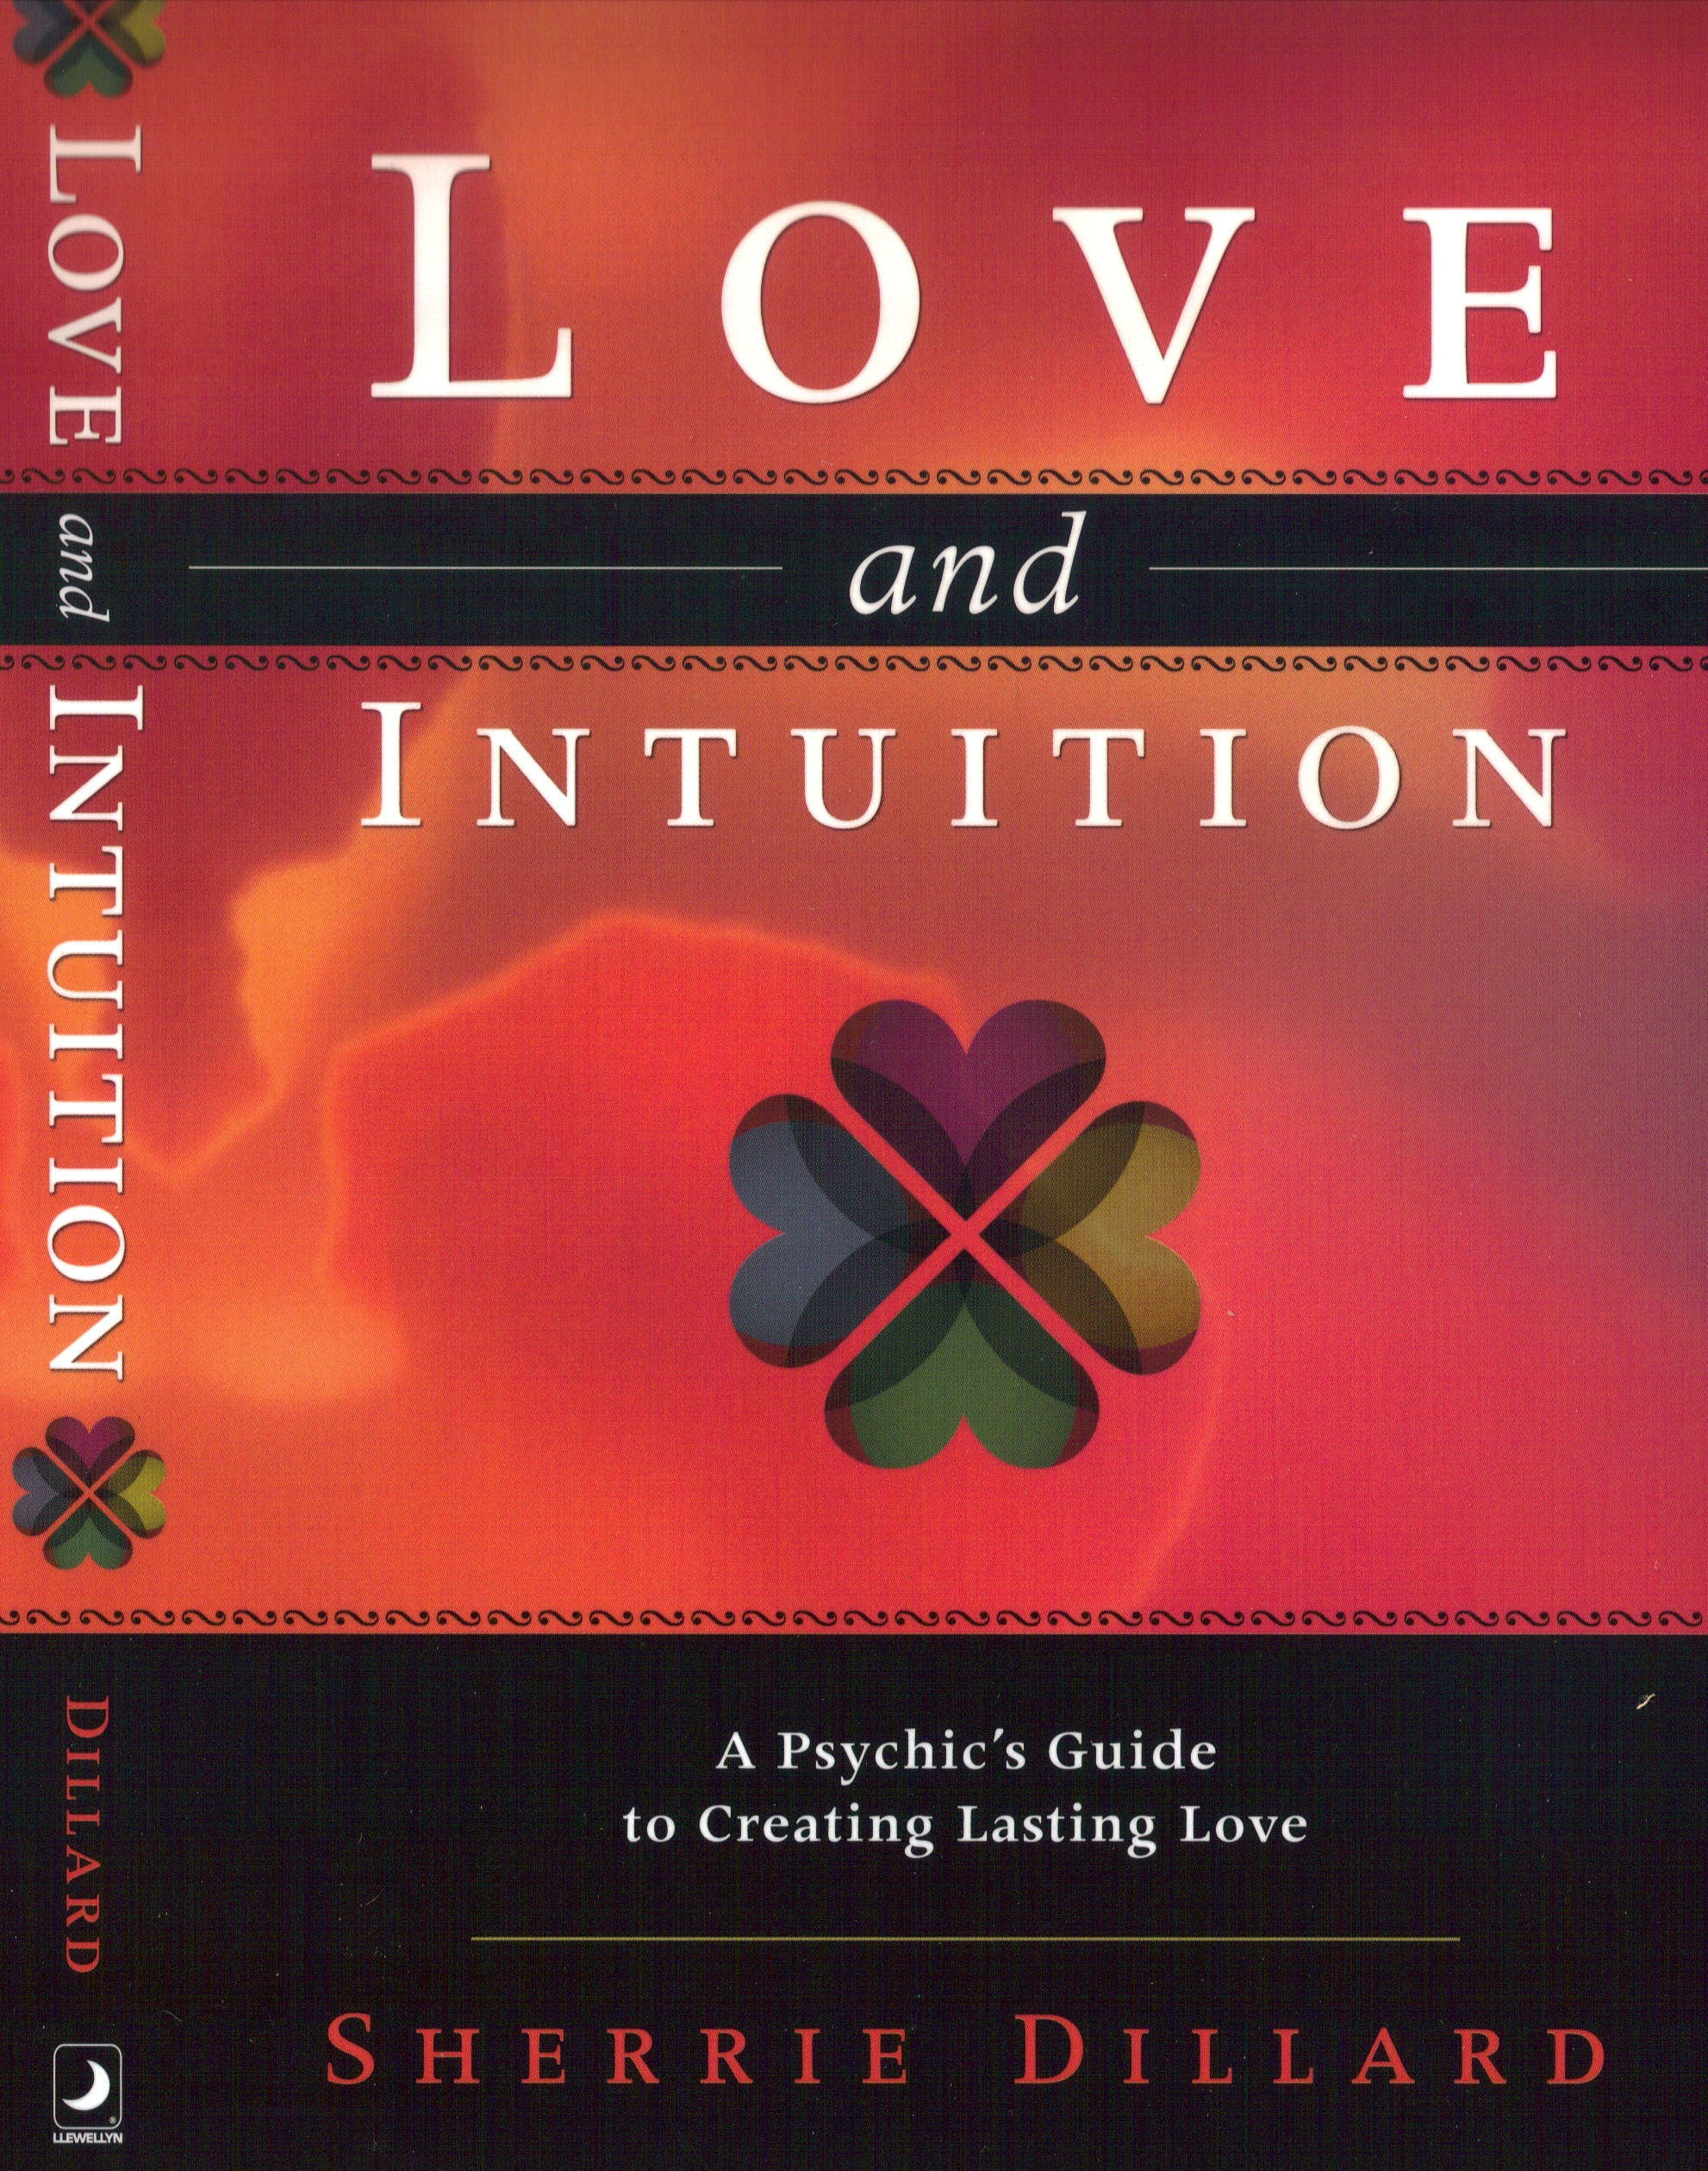 love%20and%20intuition[1] (2)